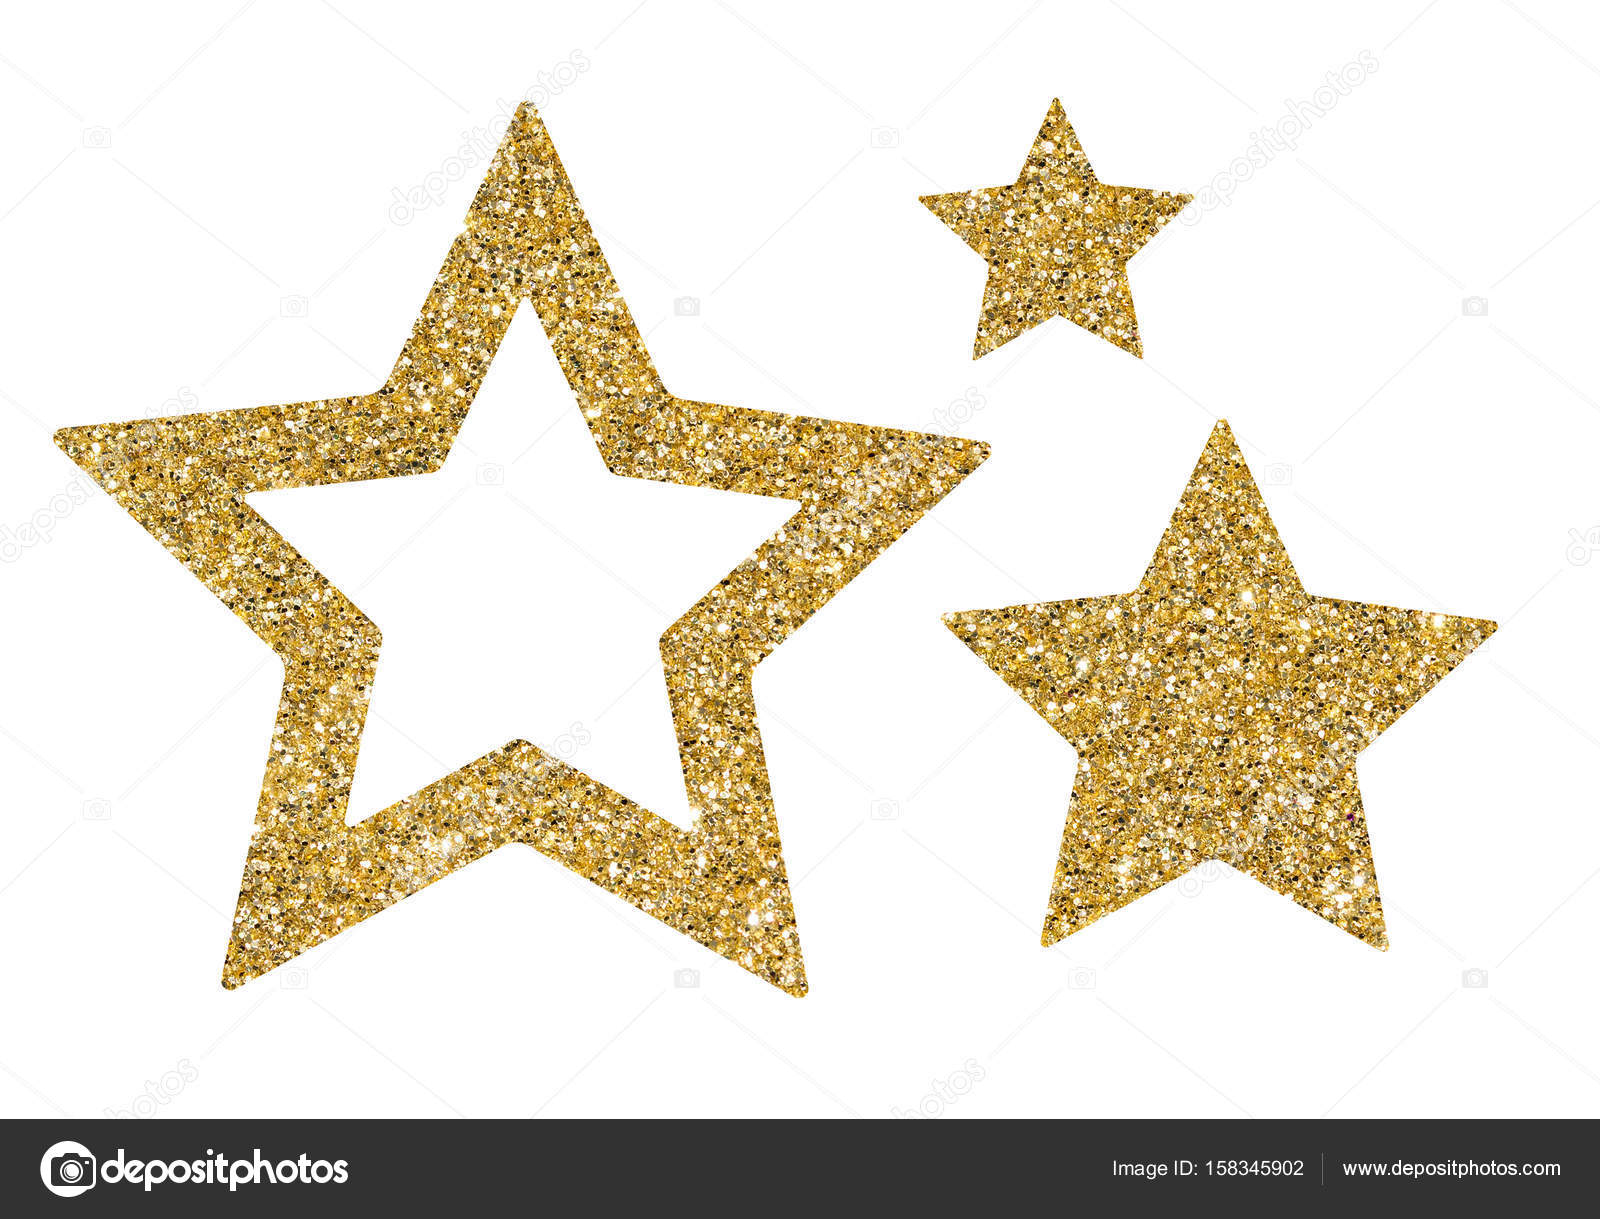 gold stars of sequin confetti isolated on white background